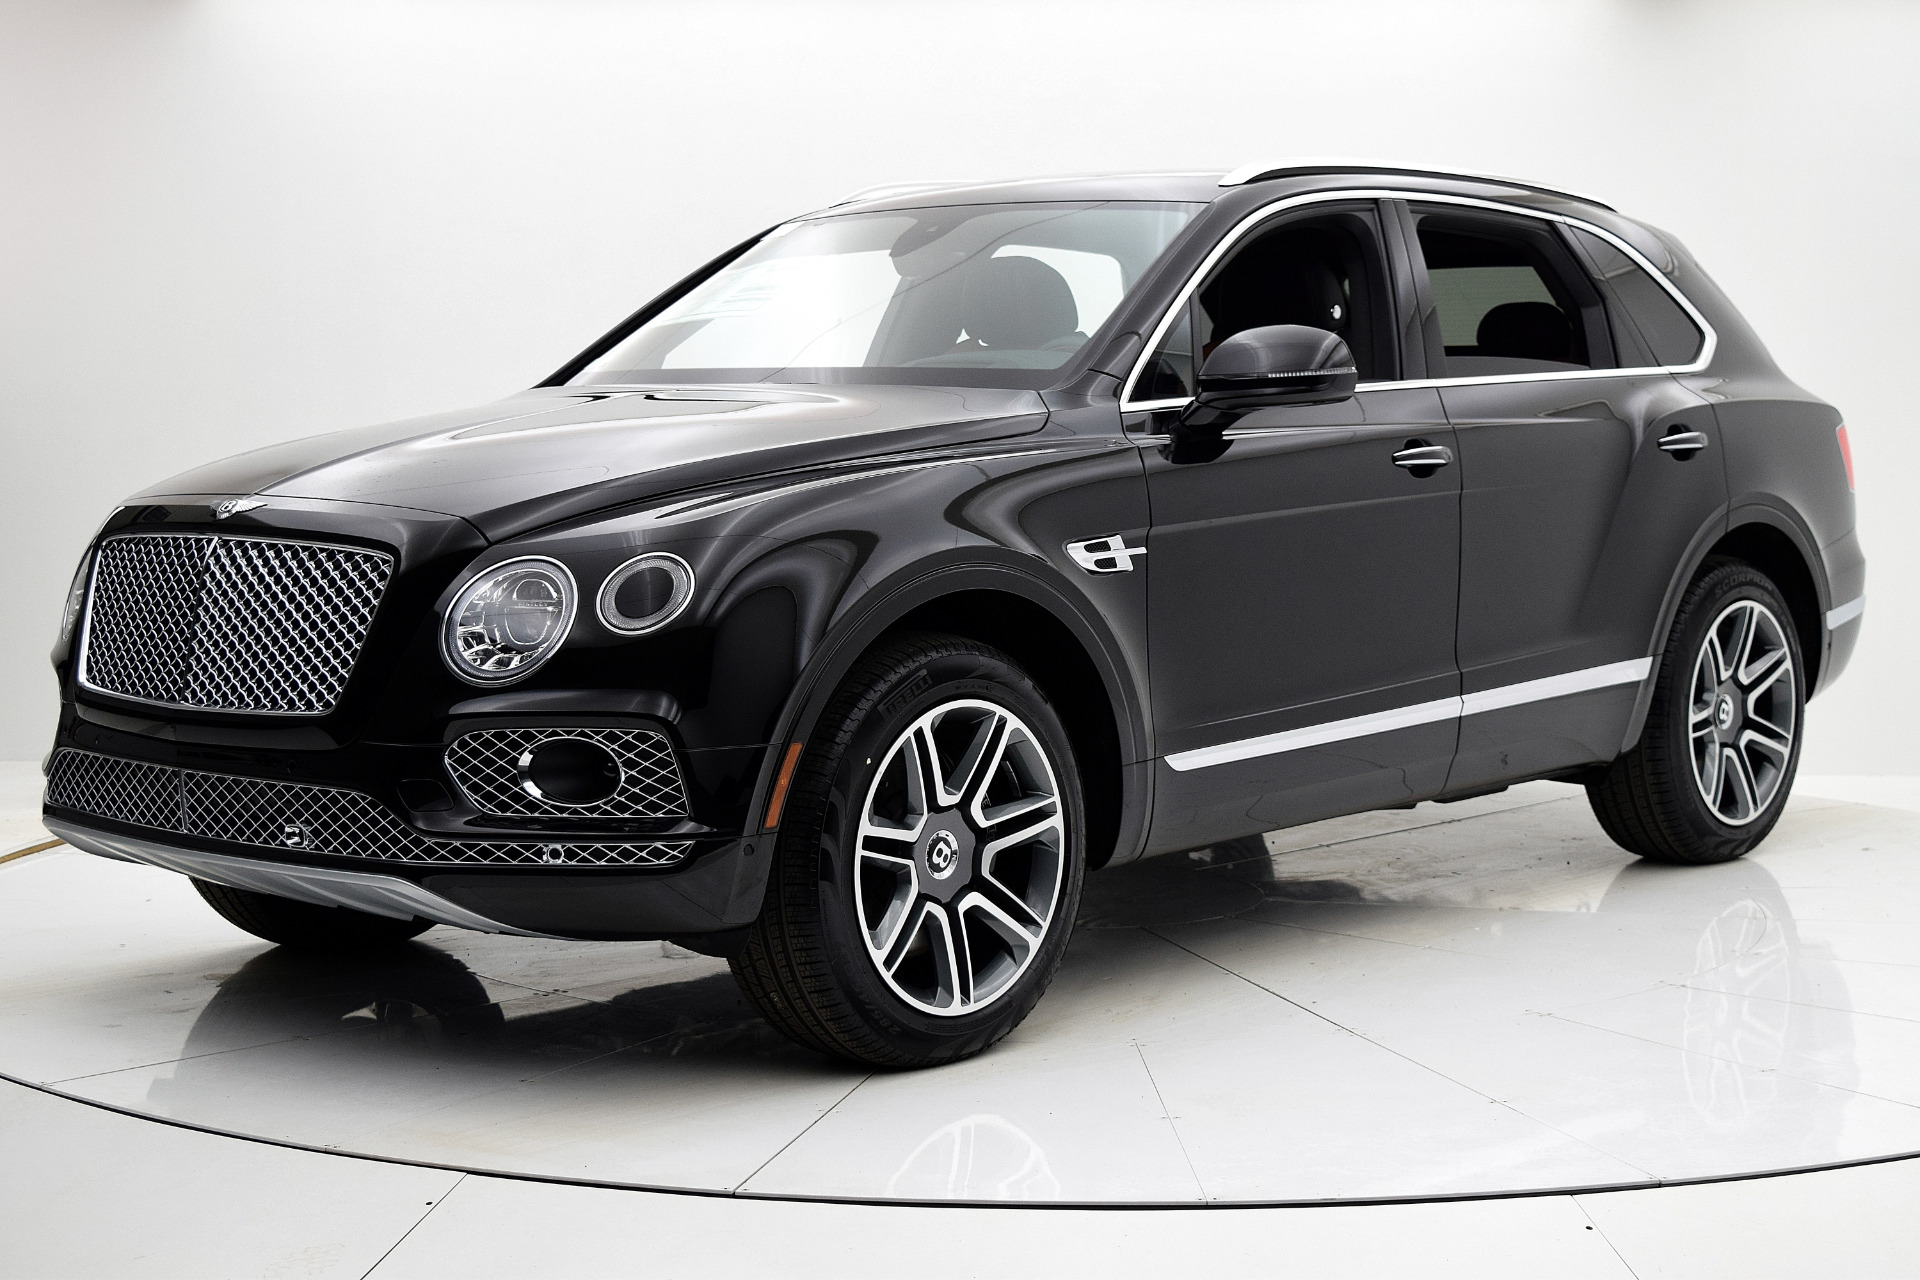 Used 2018 Bentley Bentayga Activity Edition for sale $159,880 at F.C. Kerbeck Aston Martin in Palmyra NJ 08065 2